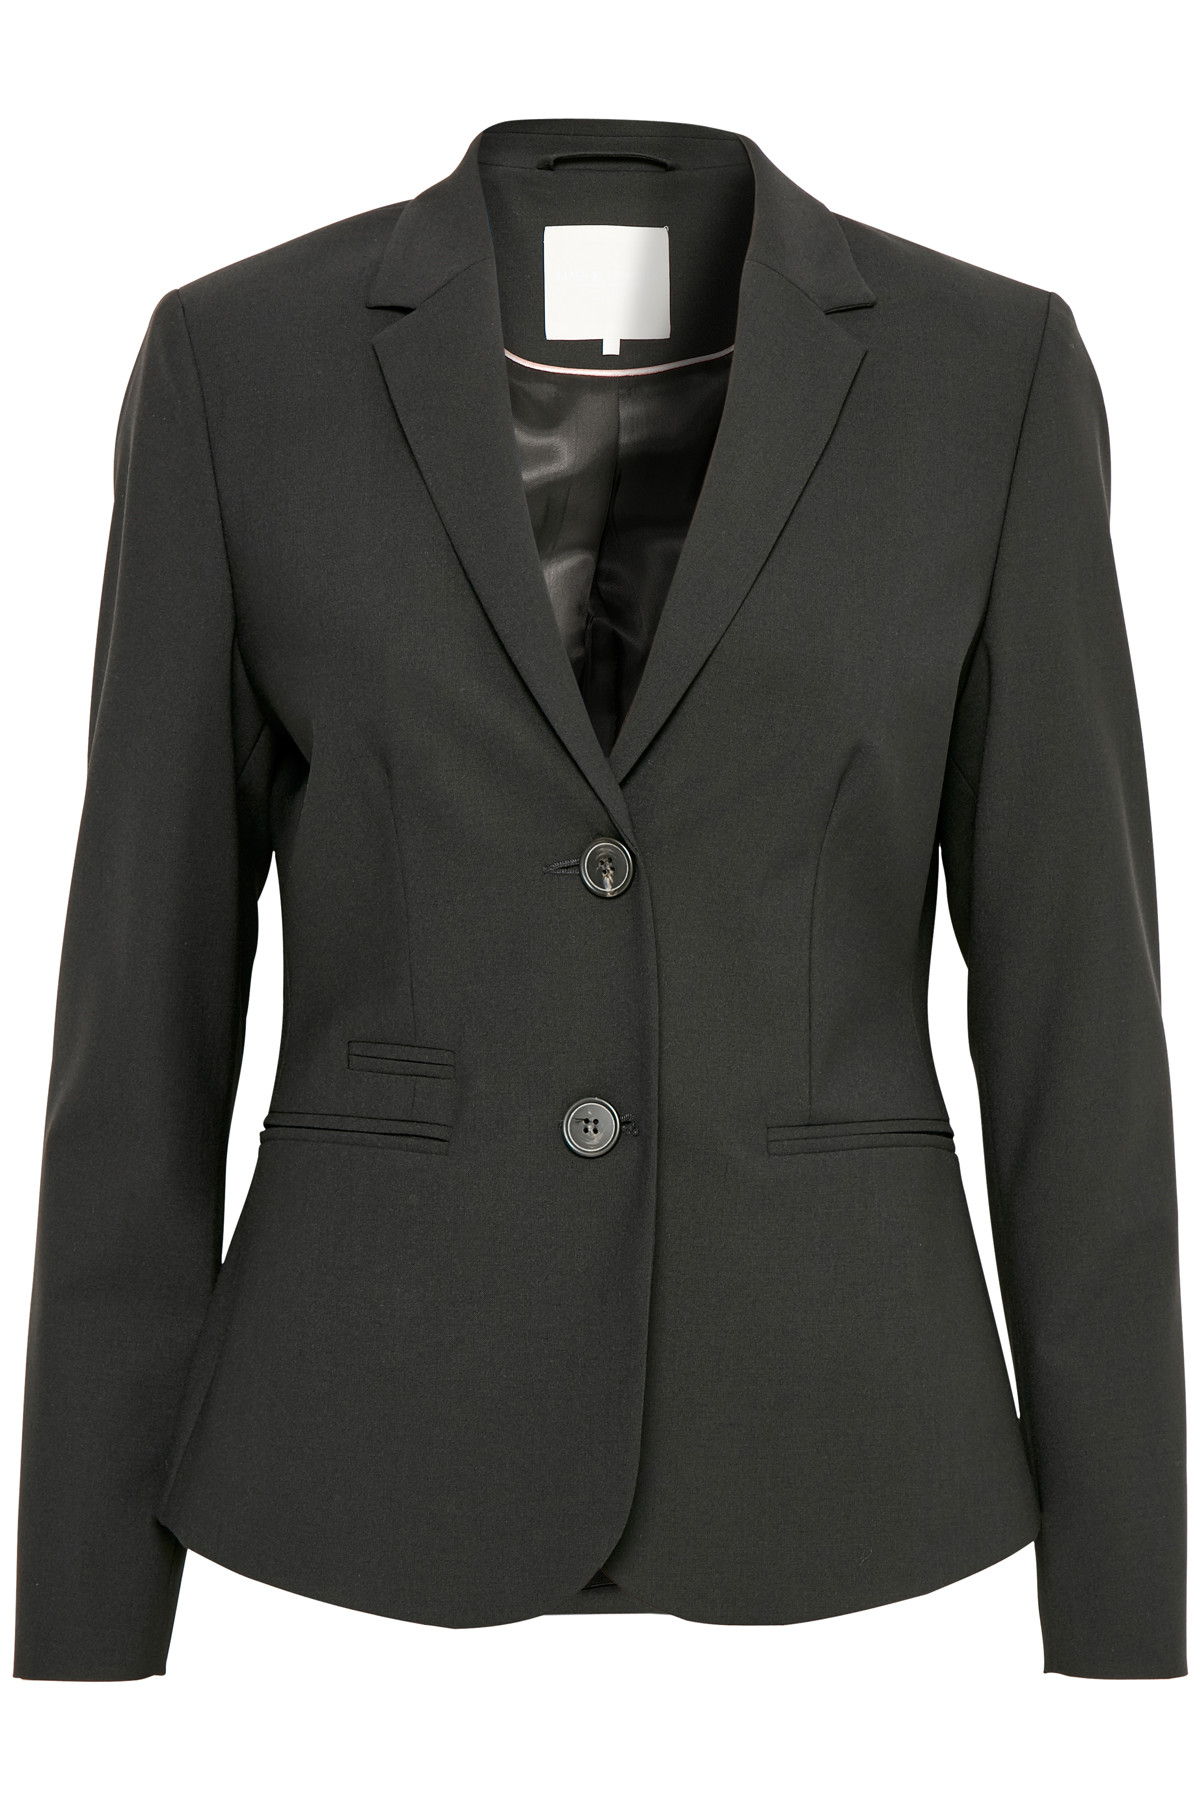 Image of   KAREN BY SIMONSEN SYDNEY BLAZER 10102001 (Black 40999, 46)